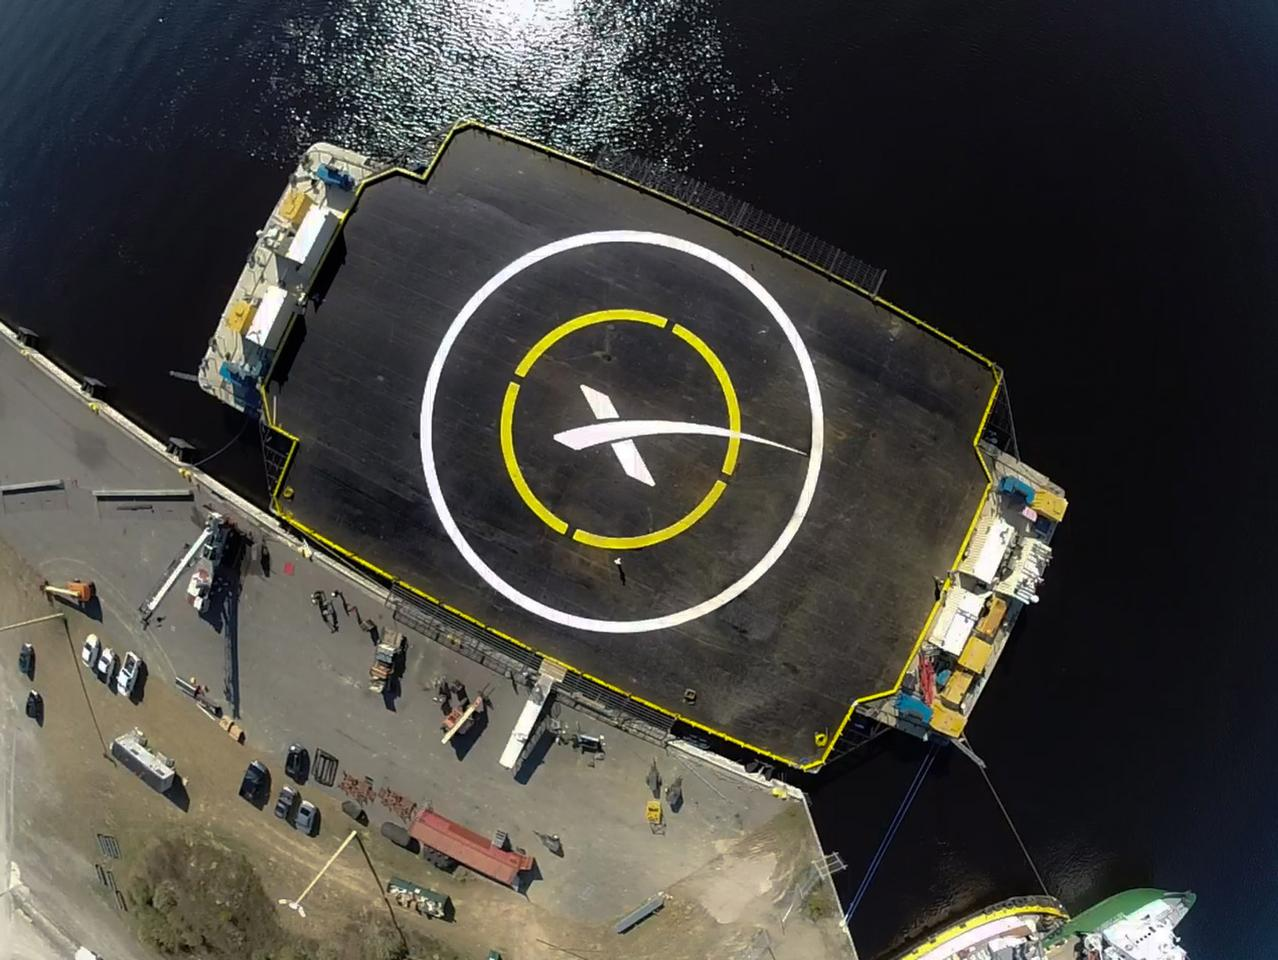 An autonomous spaceport drone ship will act as the landing target for the Falcon 7